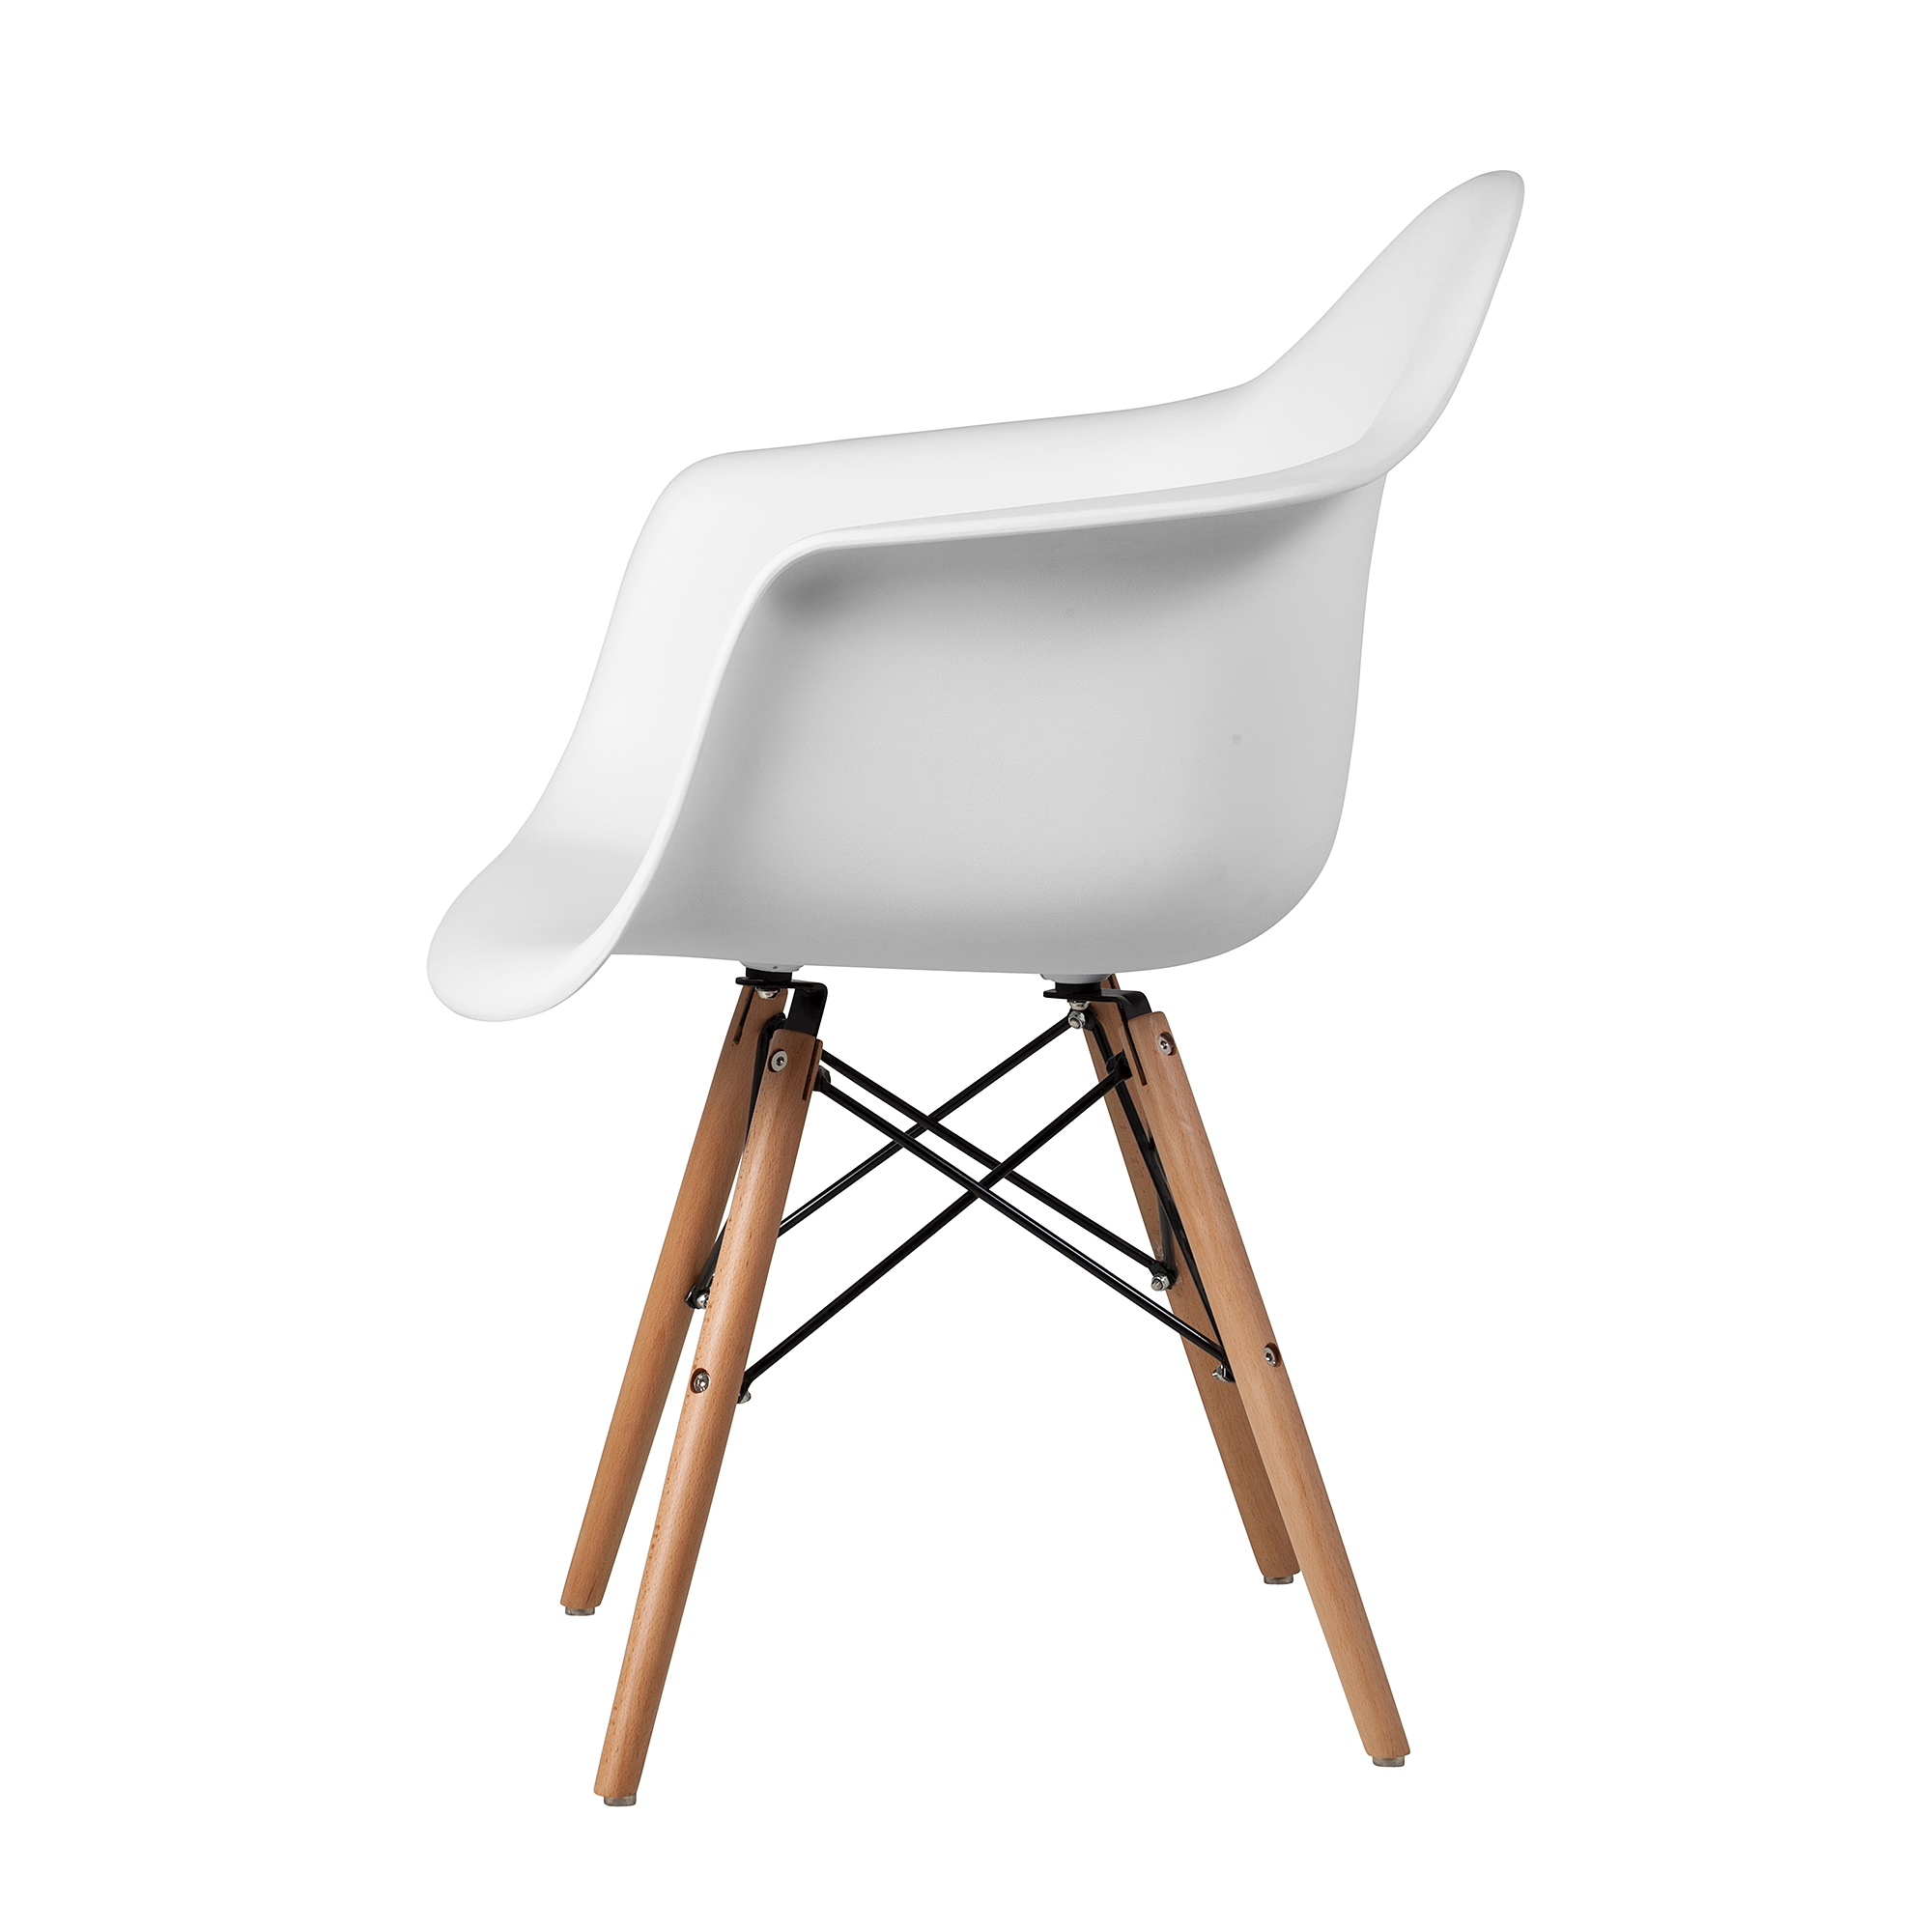 Charles Eames Style DAW Arm Chair, White ABS Plastic